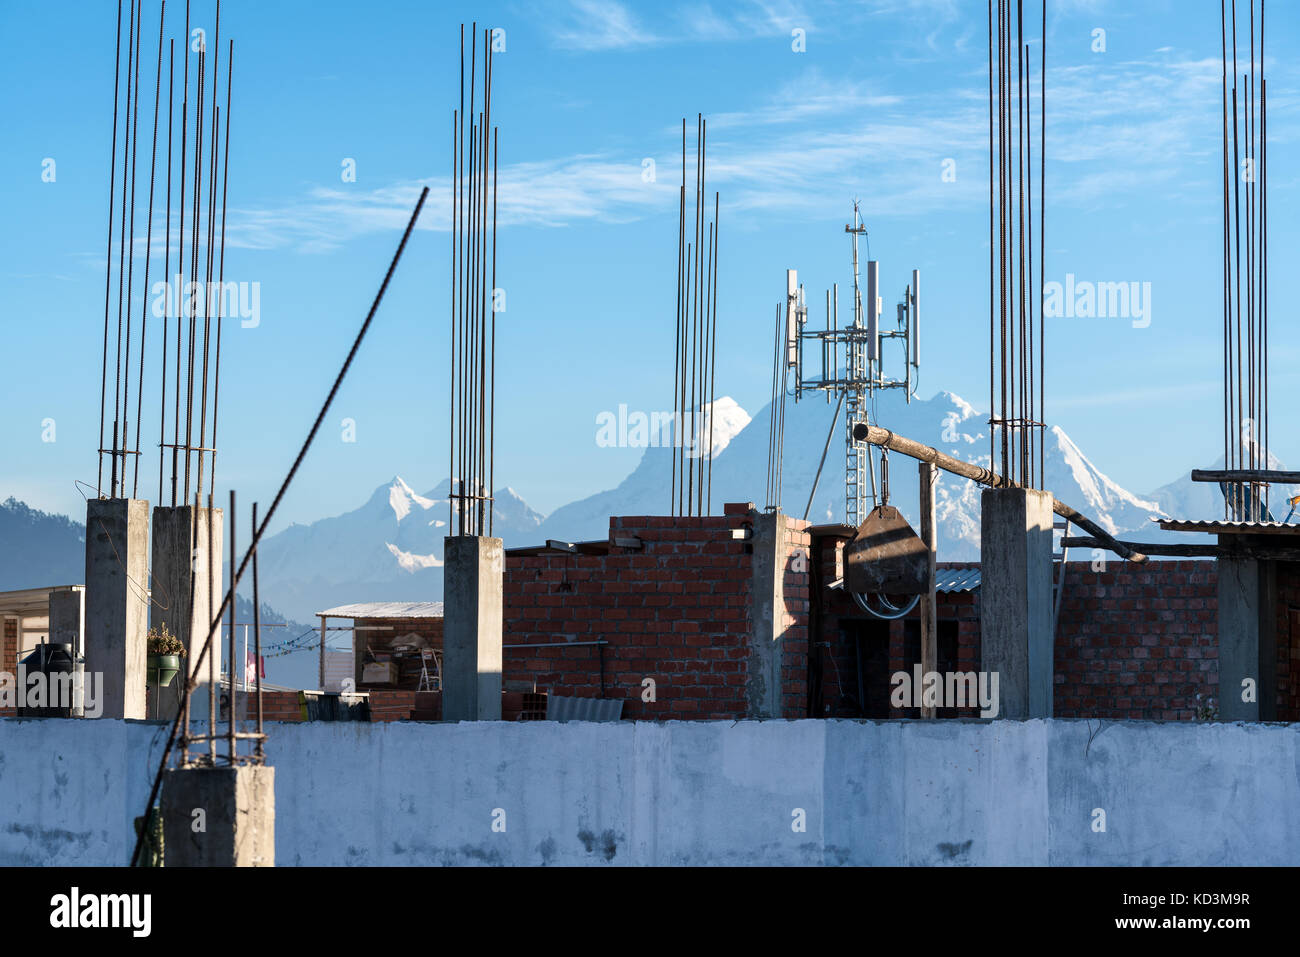 Construction site and Huascaran mountain in the background, Huaraz city, Peru Stock Photo